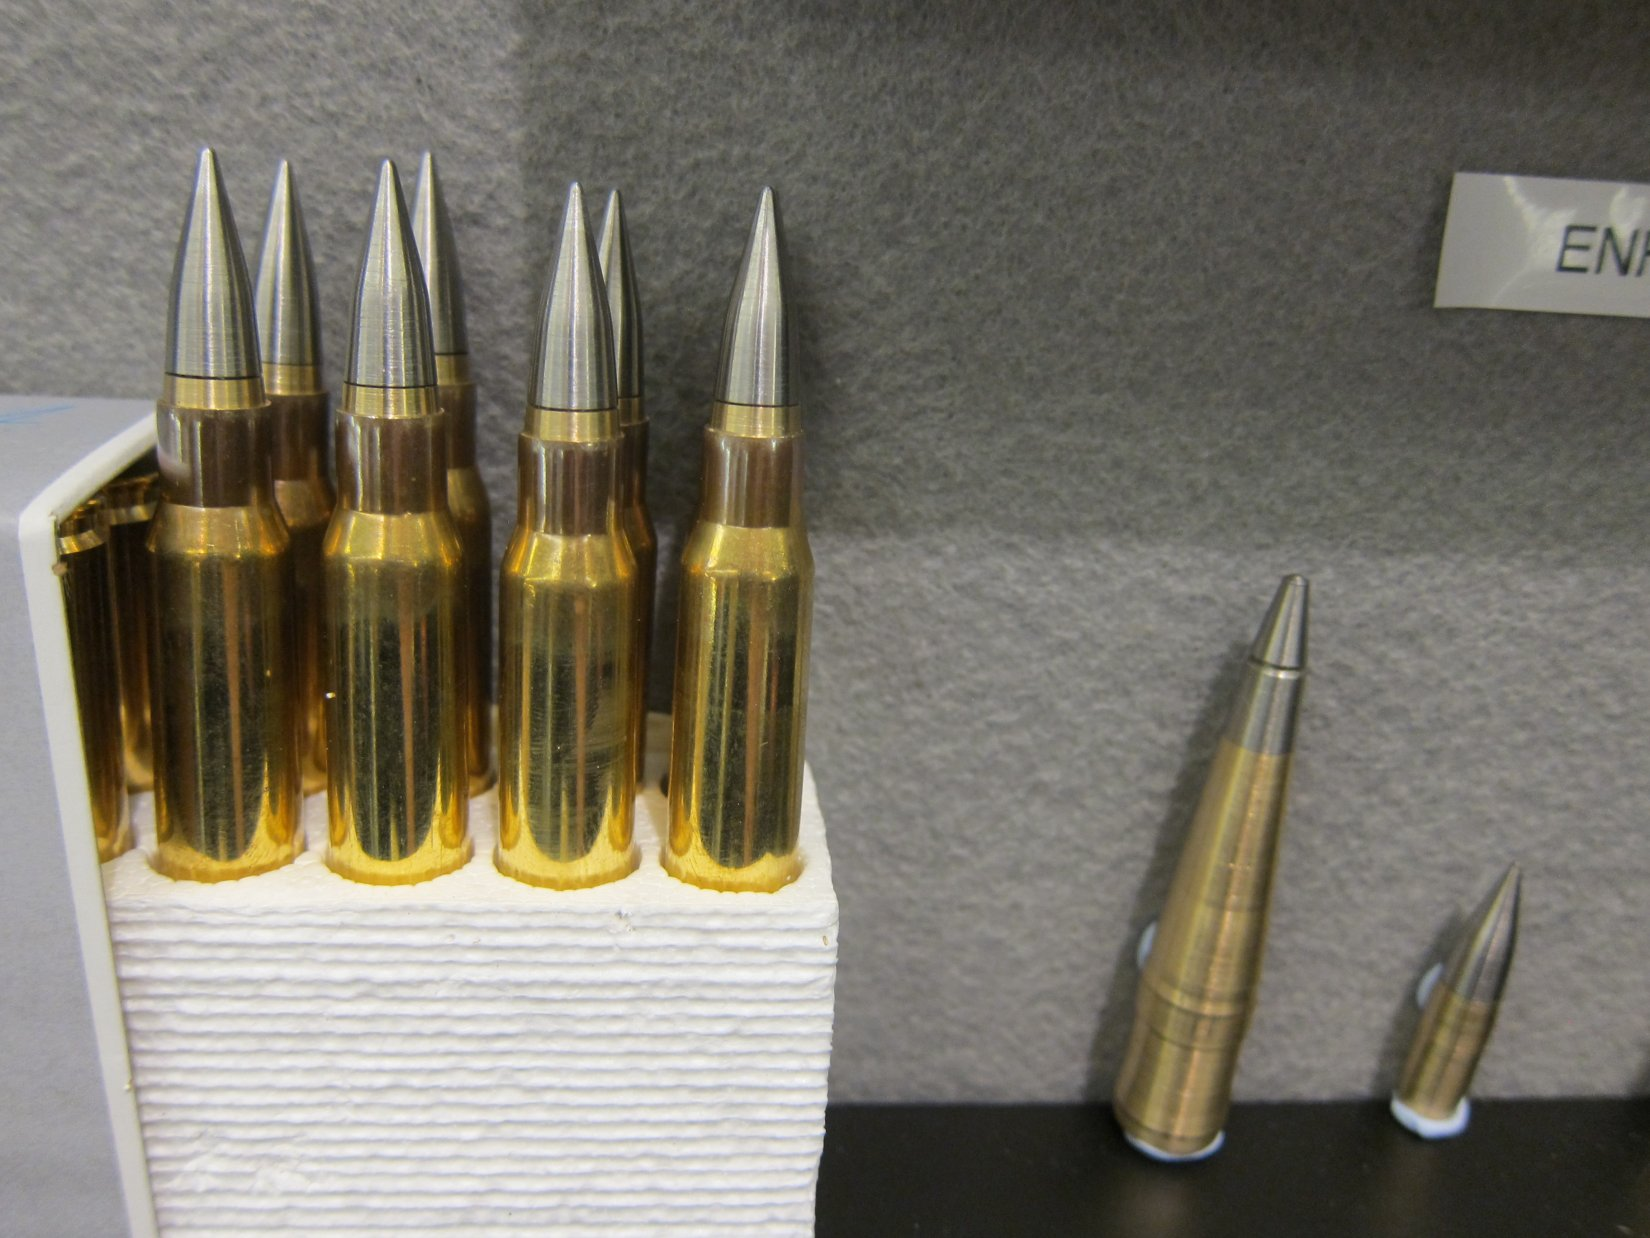 DSG Technology PNW Arms Super Sniper Ammunition SSA formerly Enhanced Performance Sniper EPR Super Sniper Tactical SST and Super Sniper Armor Piercing SSAP Rounds NDIA Joint Armaments 2012 DefenseReview.com DR 6 DSG Technology/PNW Arms Super Sniper Ammunition (SSA) Enhanced Range Rifle Ammo Being Made in the USA for Military Special Operations Forces (SOF) Long Range Interdiction/Sniping and Close Quarters Battle/Close Quarters Combat (CQB/CQC) Applications: Solid Copper Super Sniper Tactical (SST) Rounds/Bullets and Tungsten Tipped Super Sniper Armor Piercing/Armor Penatrating (SSAP) AP Rounds/Bullets in All Military NATO Calibers! (Video!)